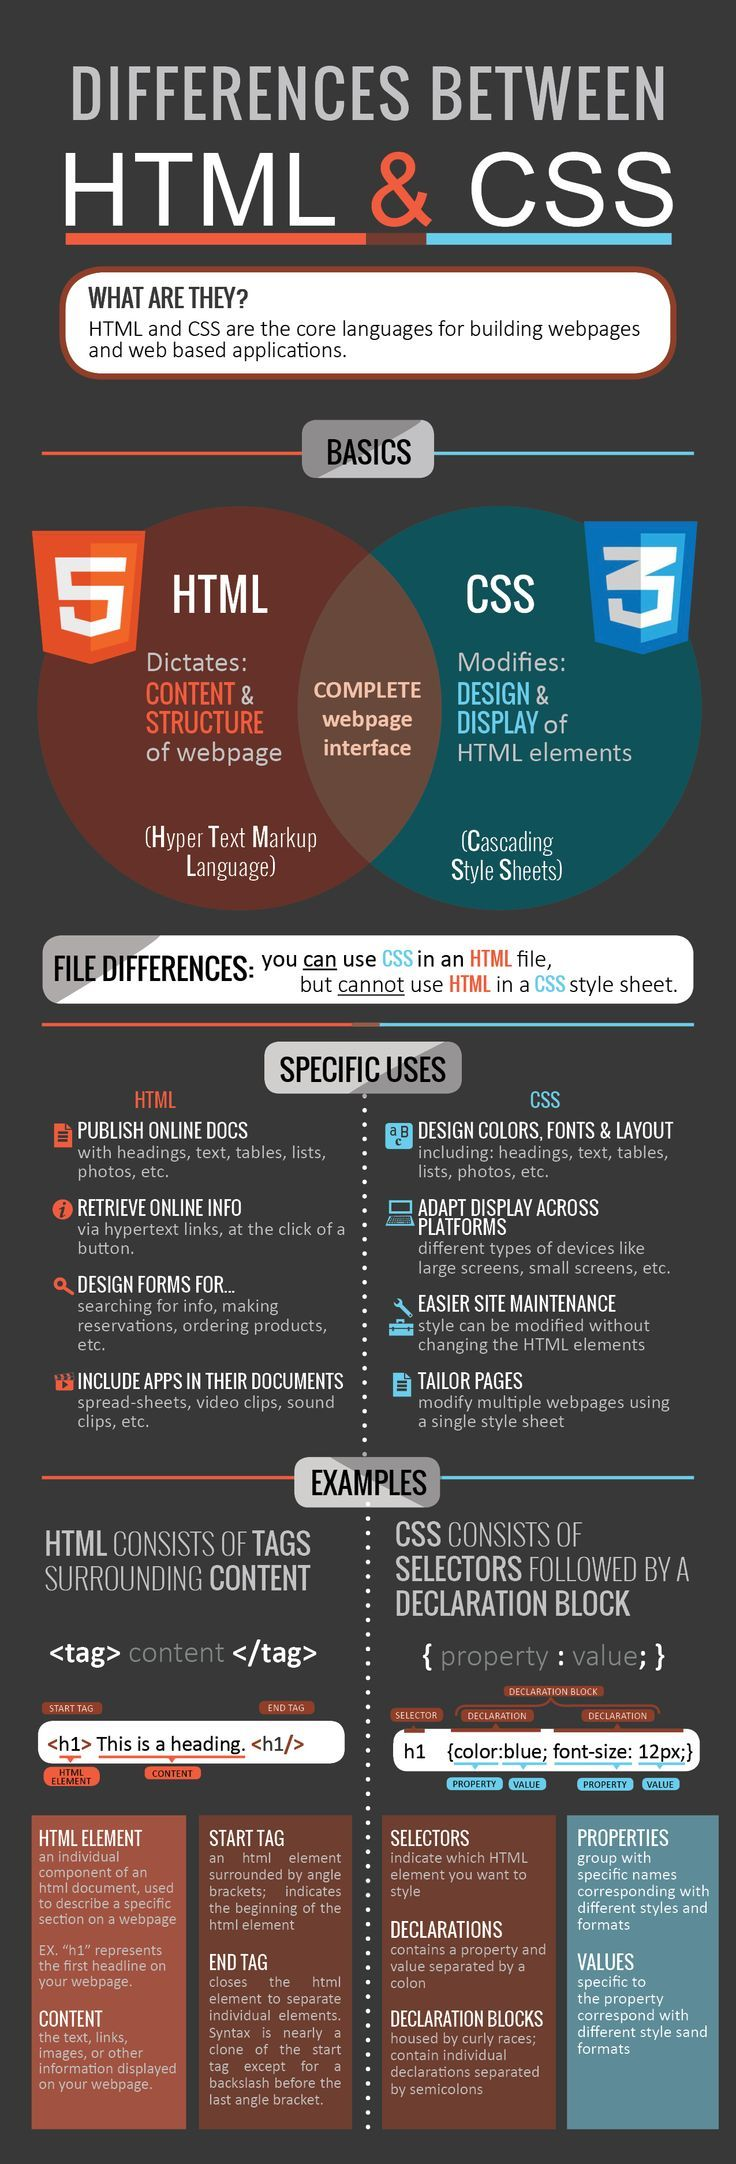 29 Best Learning Images On Pinterest Computers Computer Science Cat 5 Cable Wiring Diagram 13 T568b Emprendedor Key Differences Between Html Css Have A Big Network Of Executives And Hr Managers